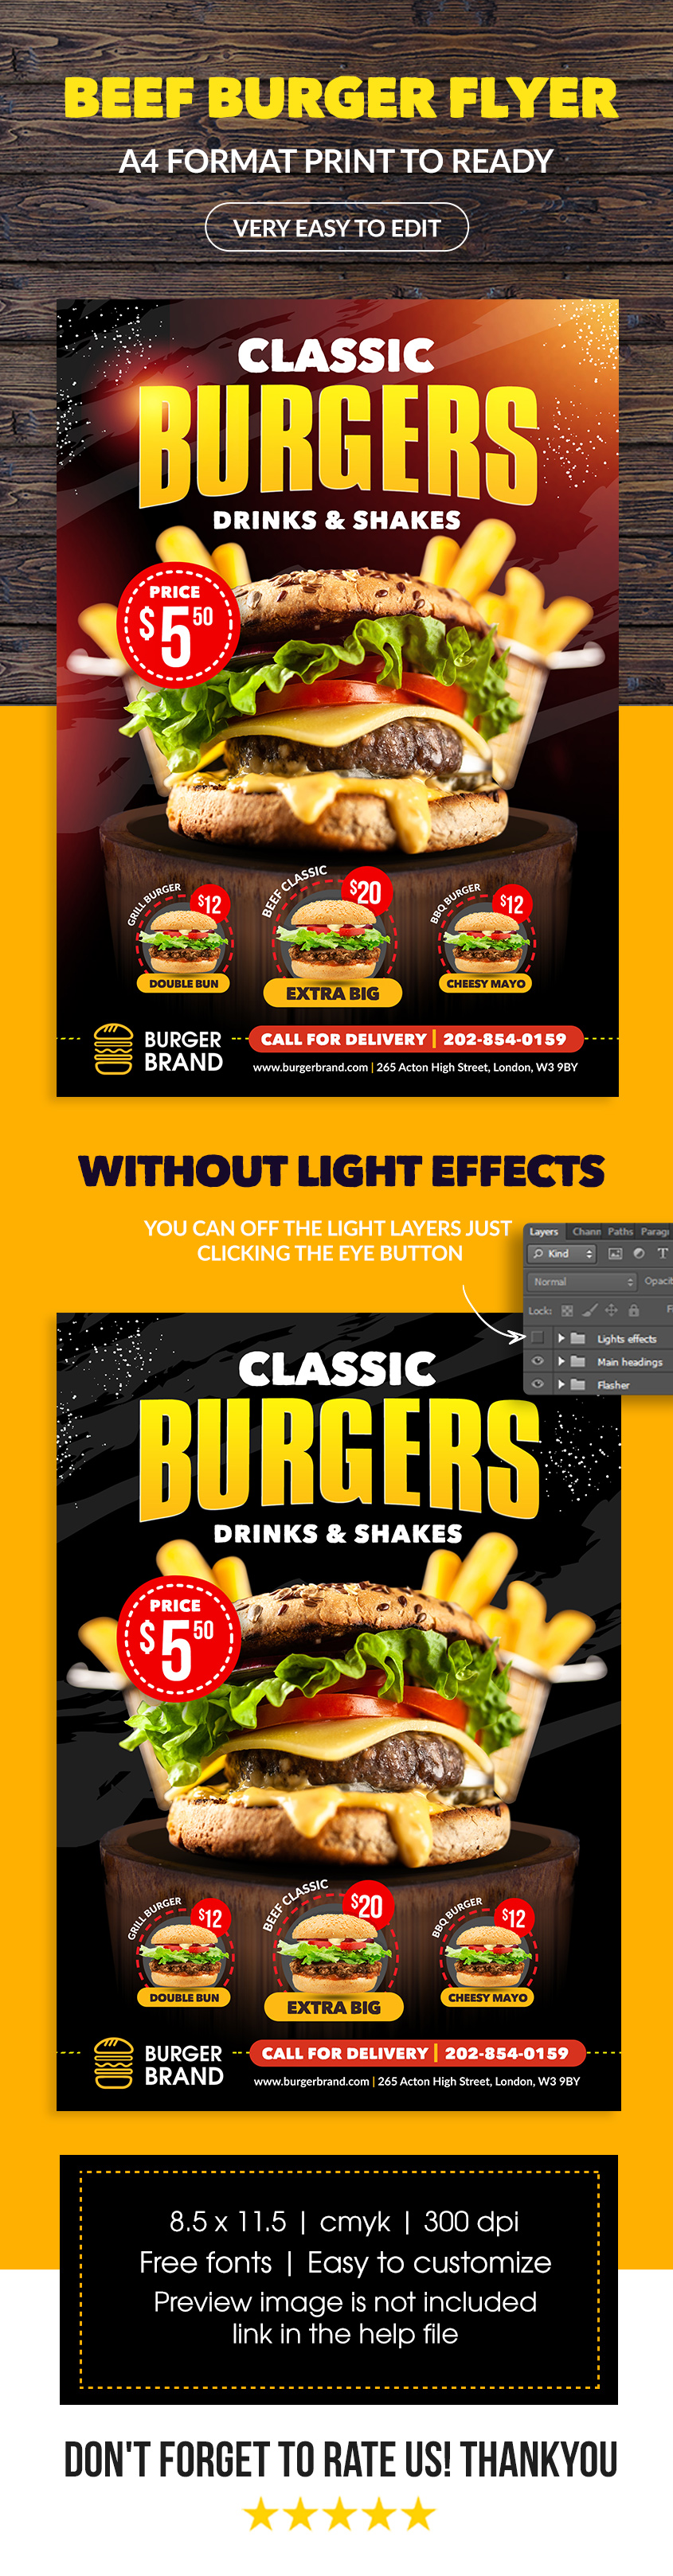 beef burger flyer template